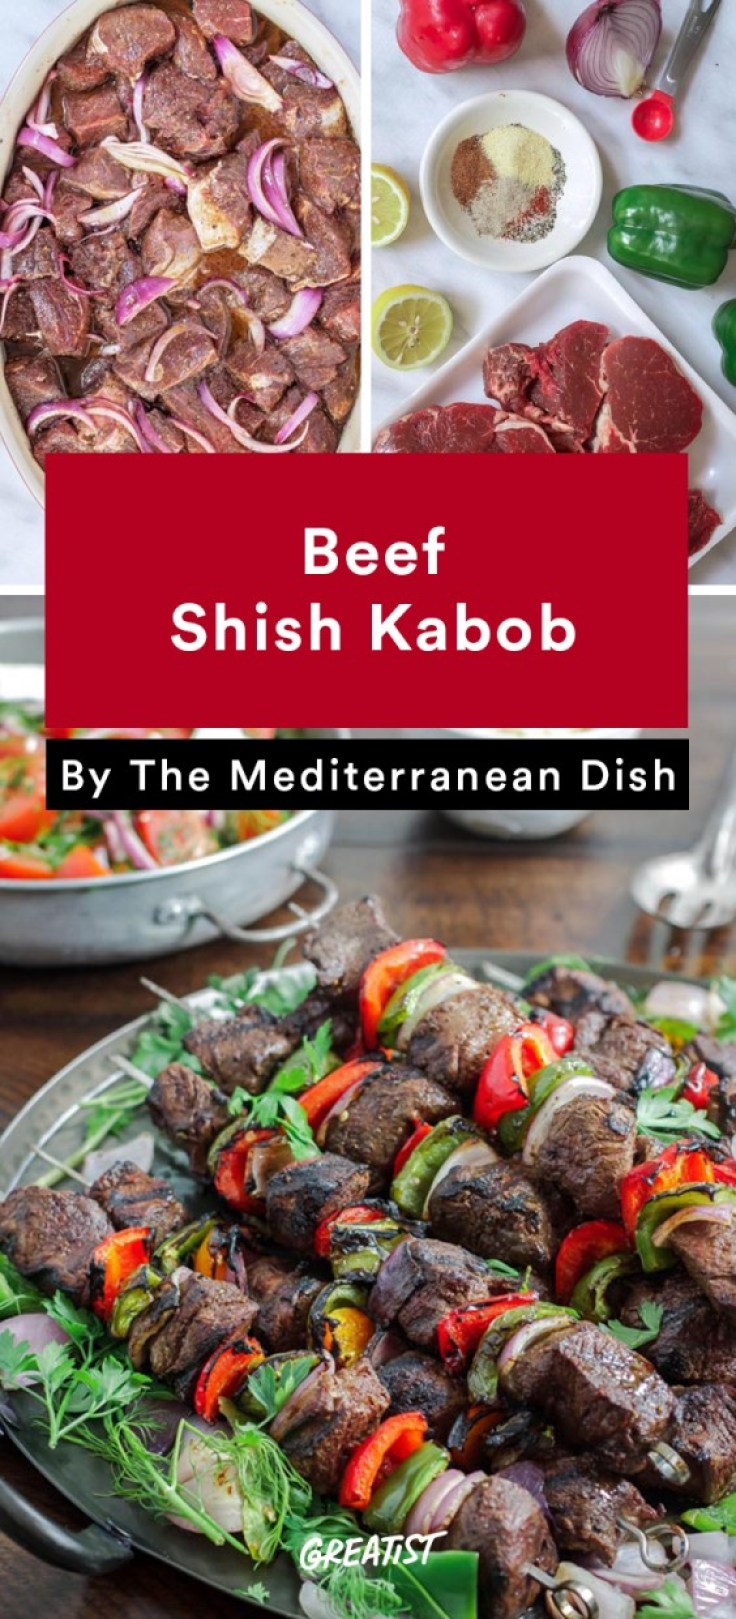 Street Food: Shish Kabob